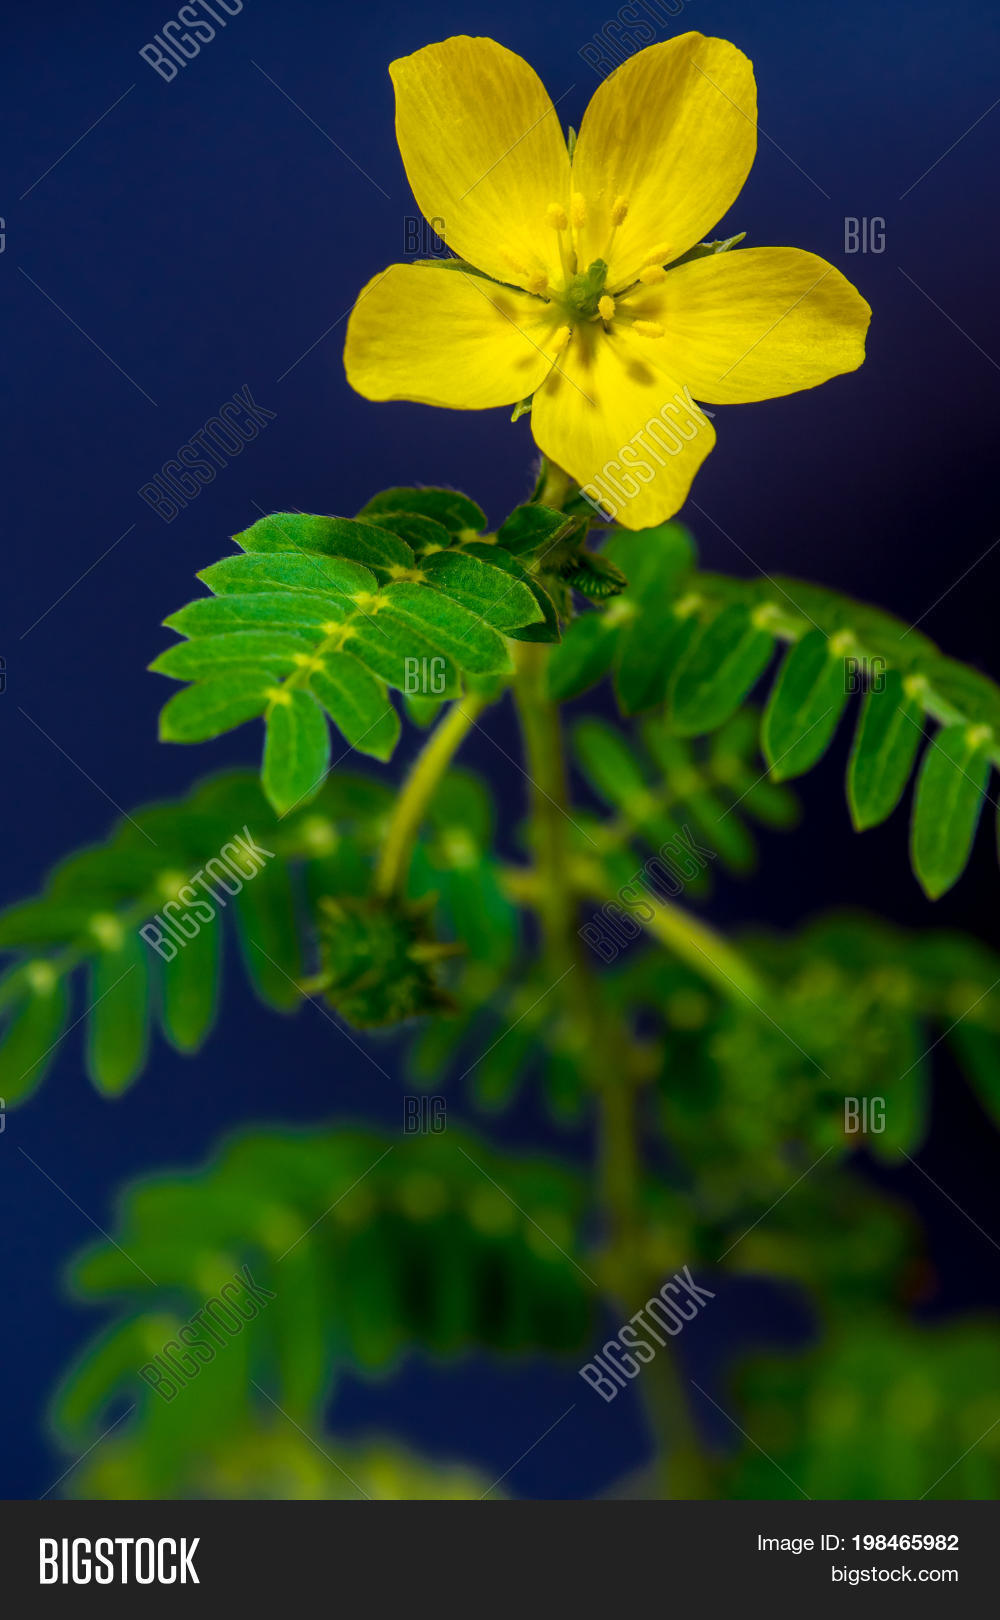 Yellow Small Flower Image Photo Free Trial Bigstock